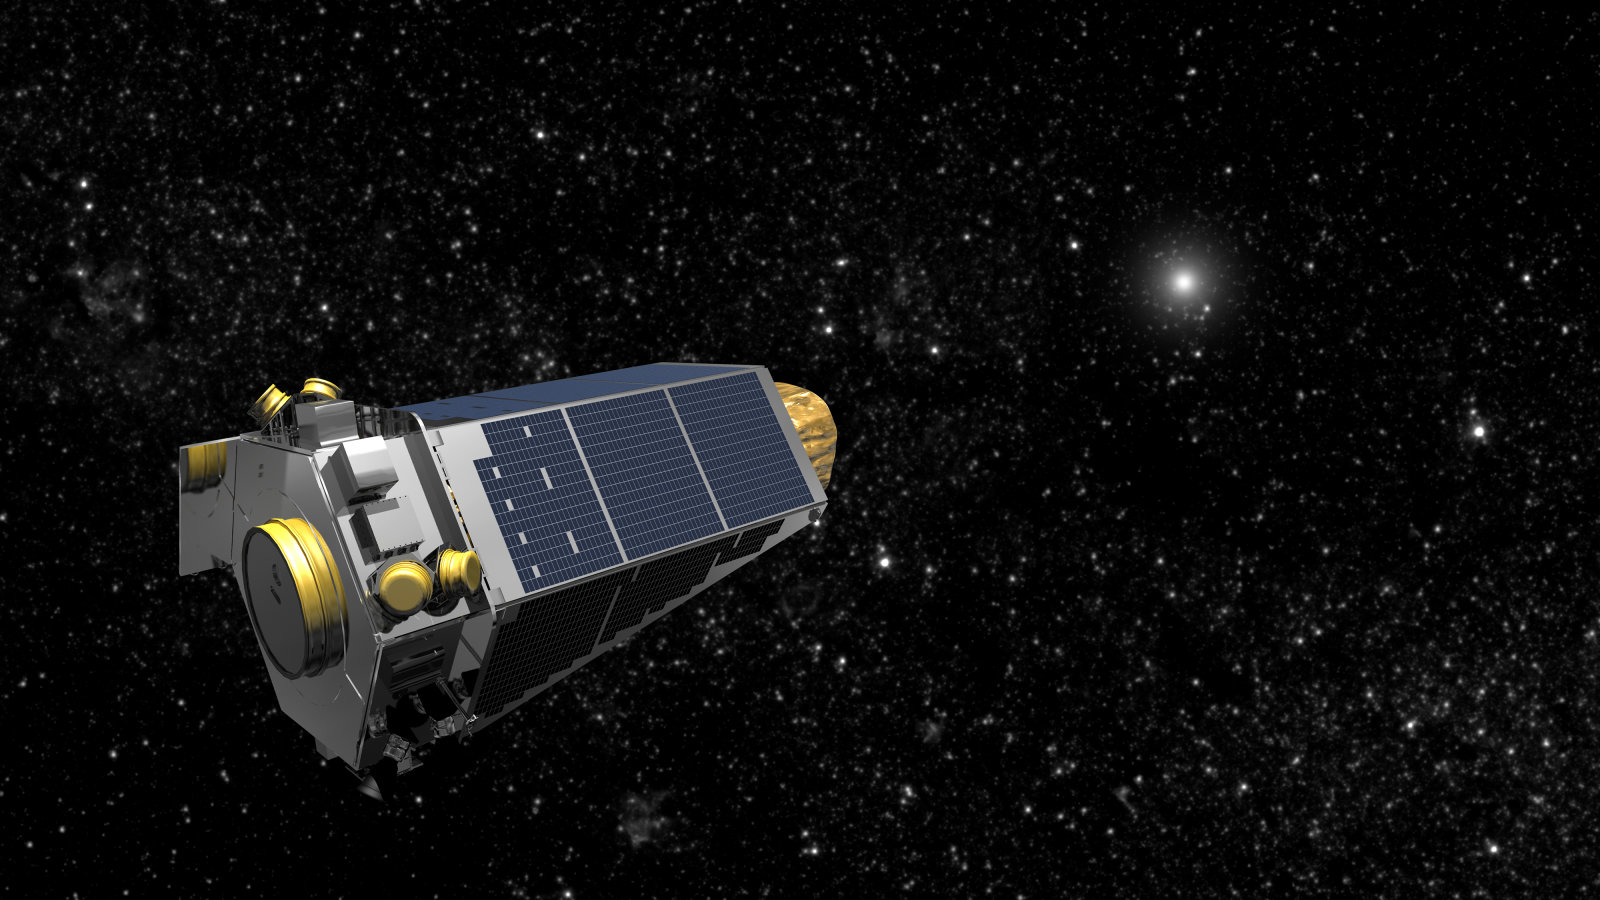 NASA's Kepler spacecraft is seen in an undated artist's rendering. During a scheduled contact on Thursday, April 7, 2016, mission operations engineers discovered that the Kepler spacecraft was in Emergency Mode and the mission has declared a spacecraft emergency. The spacecraft is nearly 75 million miles from Earth. REUTERS/NASA/Handout via Reuters  THIS IMAGE HAS BEEN SUPPLIED BY A THIRD PARTY. IT IS DISTRIBUTED, EXACTLY AS RECEIVED BY REUTERS, AS A SERVICE TO CLIENTS. FOR EDITORIAL USE ONLY. NOT FOR SALE FOR MARKETING OR ADVERTISING CAMPAIGNS